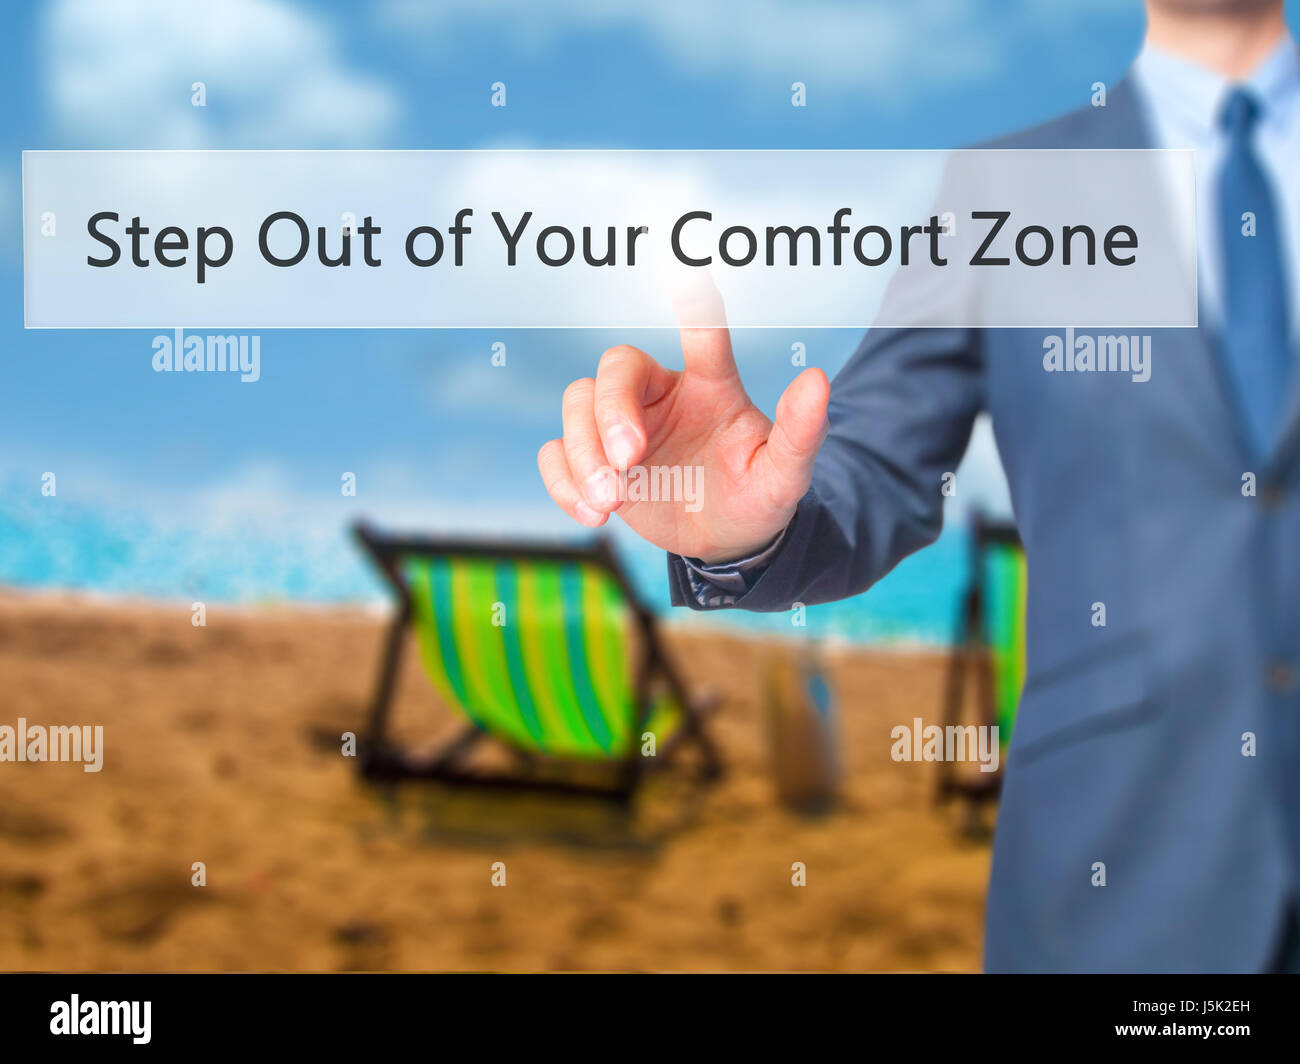 Step Out of Your Comfort Zone - Businessman hand pressing button on touch screen interface. Business, technology, internet concept. Stock Photo Stock Photo